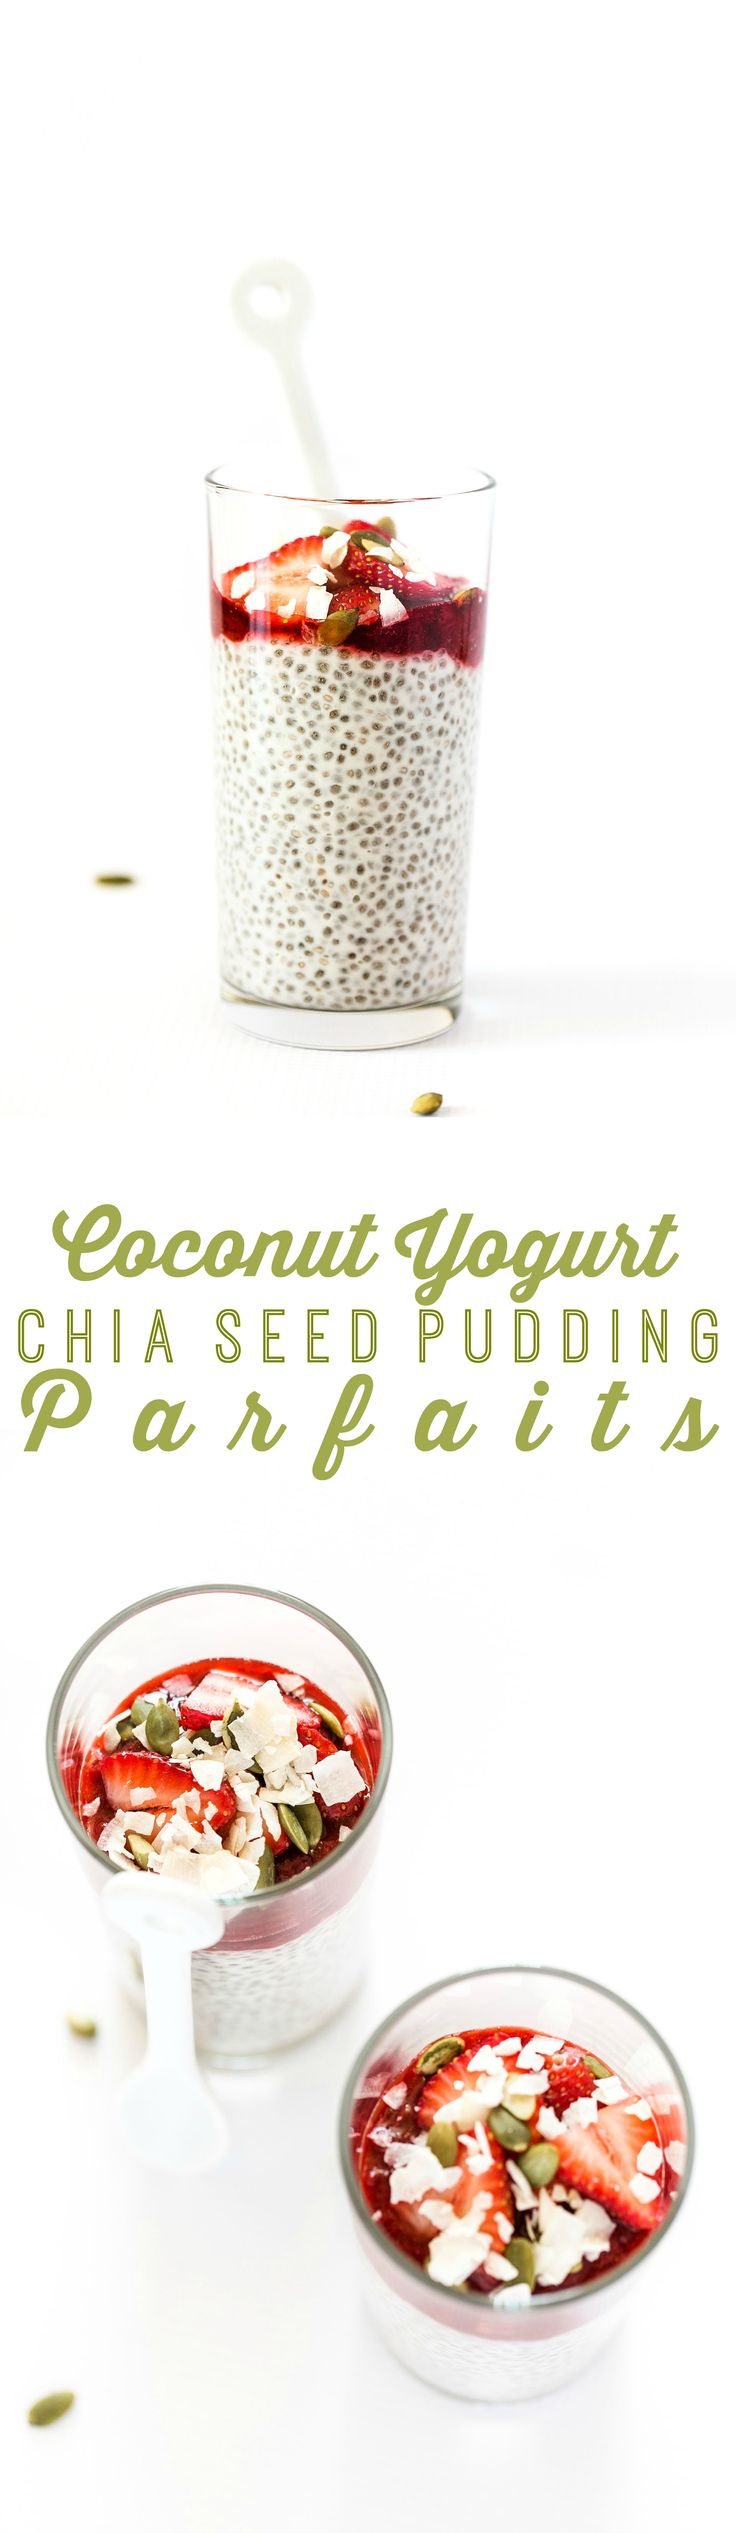 Coconut Yogurt Chia Seed Pudding Parfaits with 15-Minute Strawberry Jam | A simple yet luxurious + nourishing breakfast!